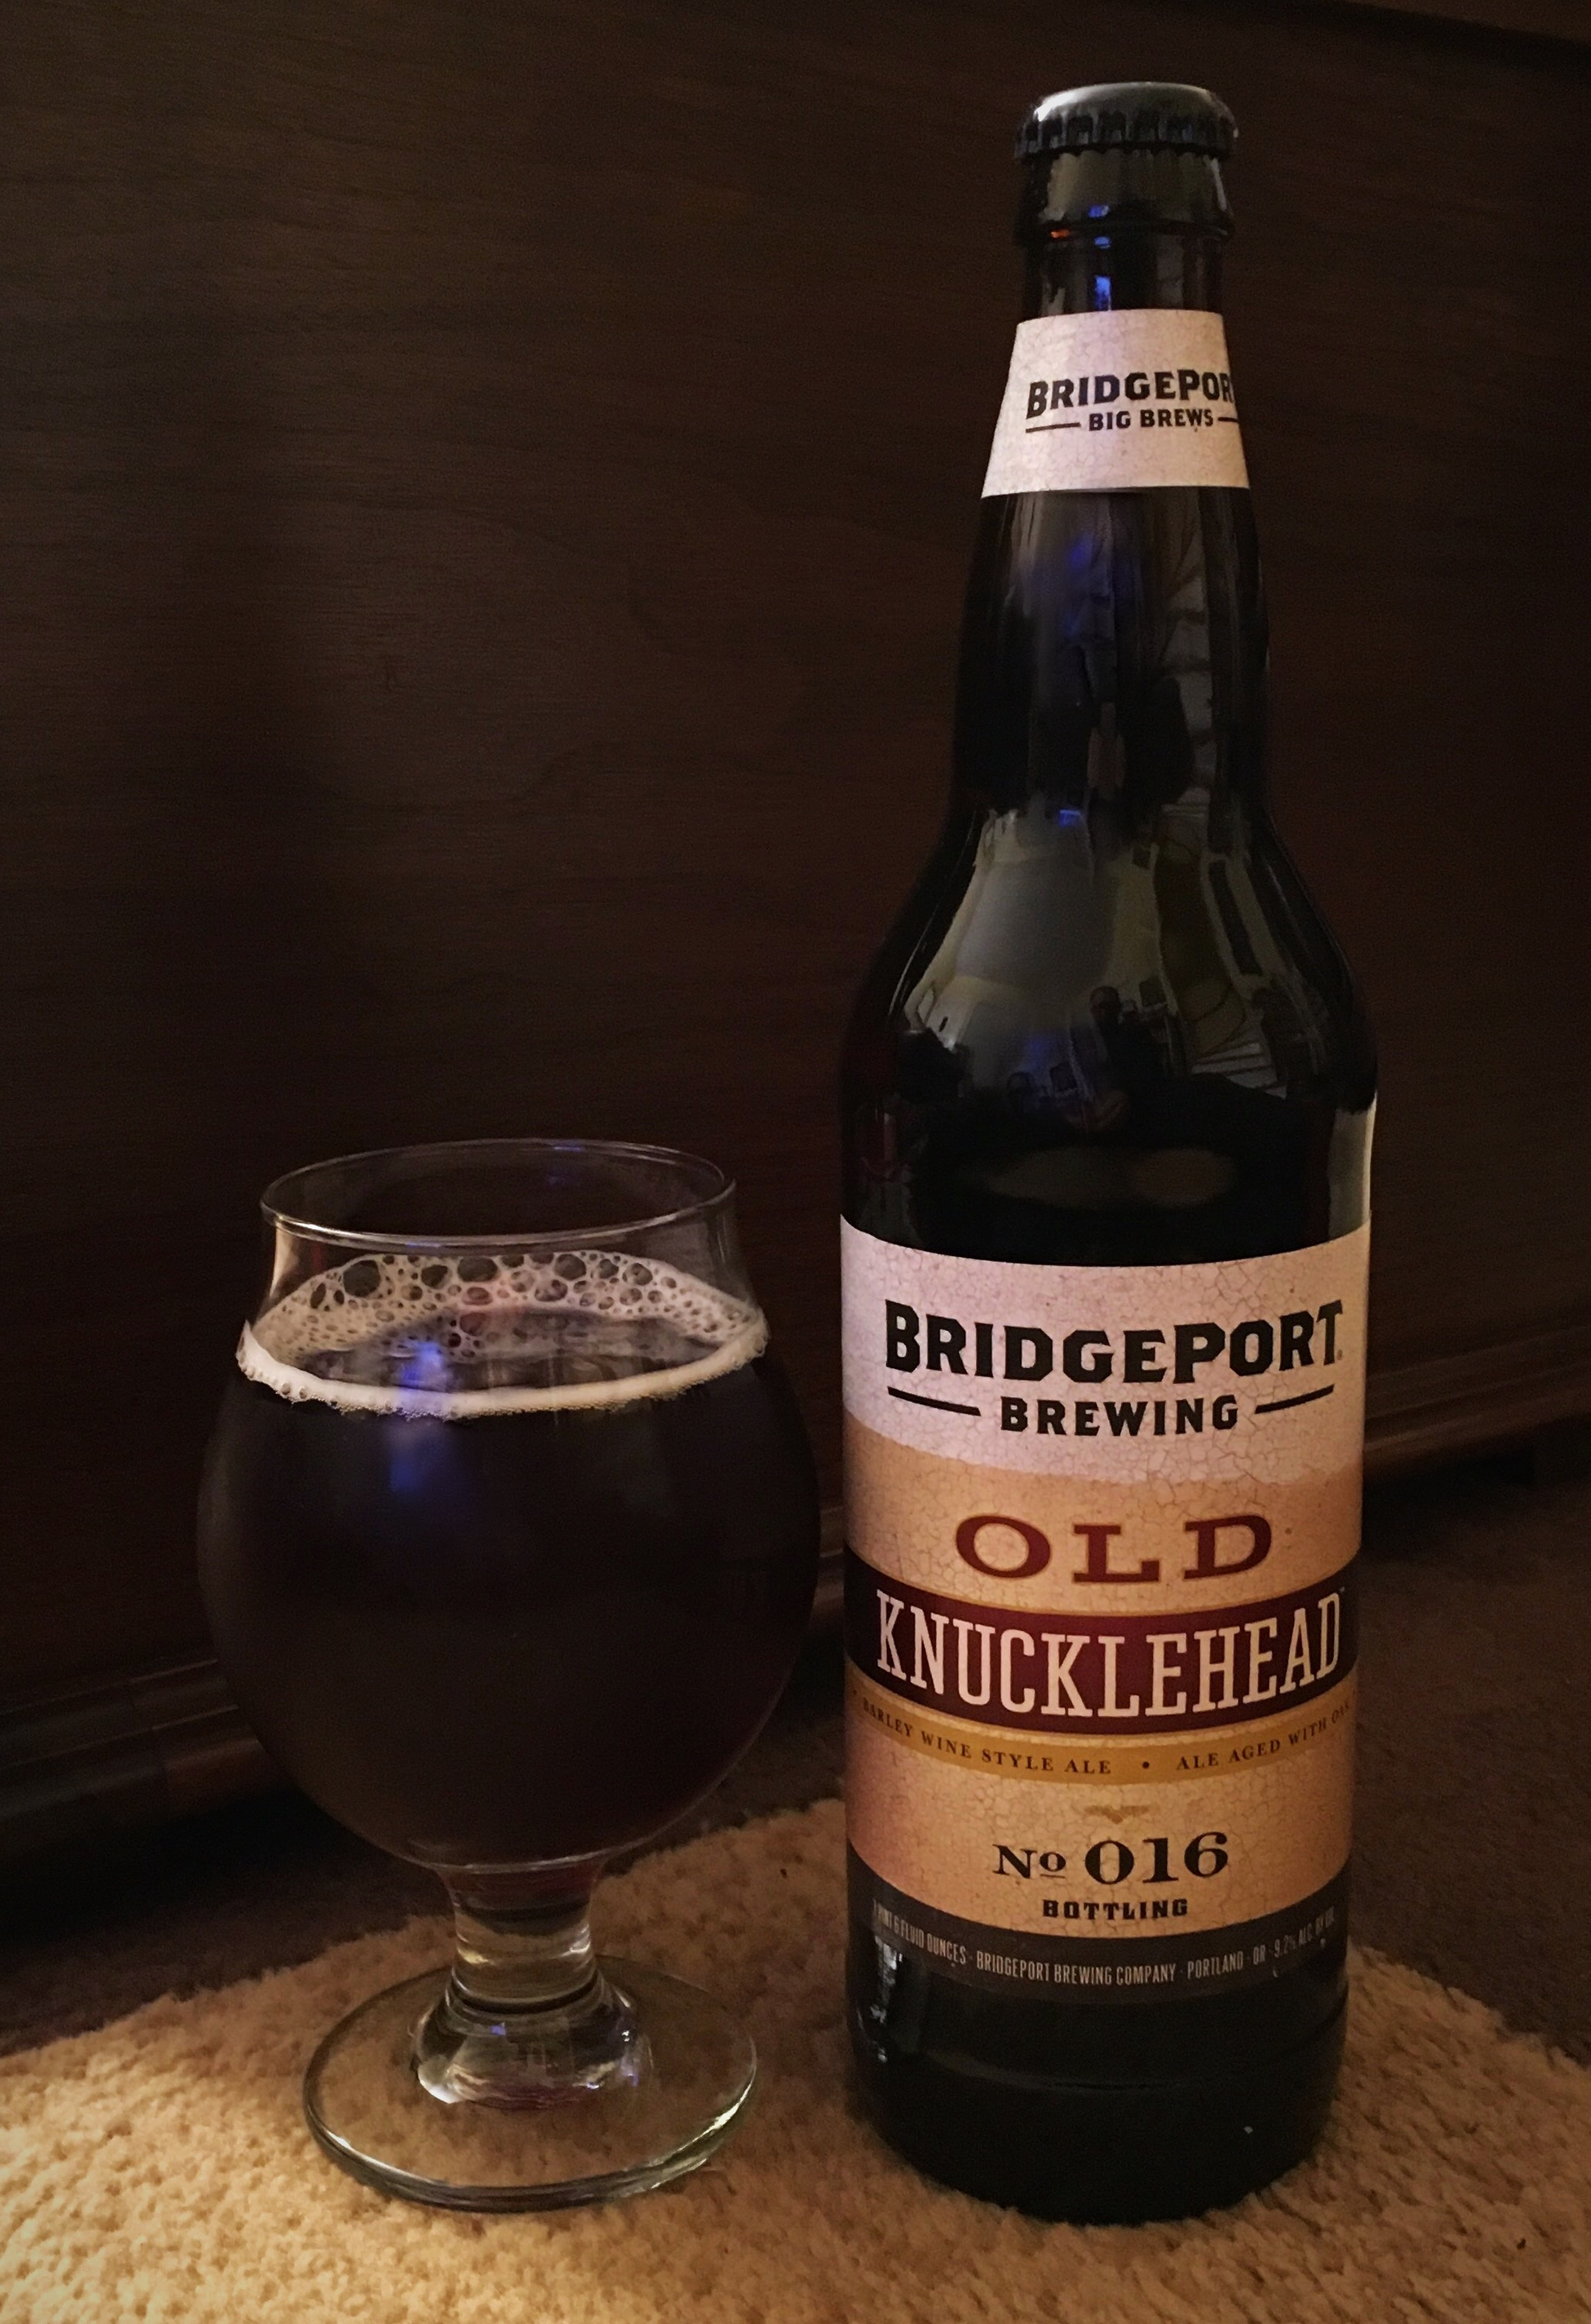 2015 BridgePort Old Knucklehead No 016 Bottle and Pour